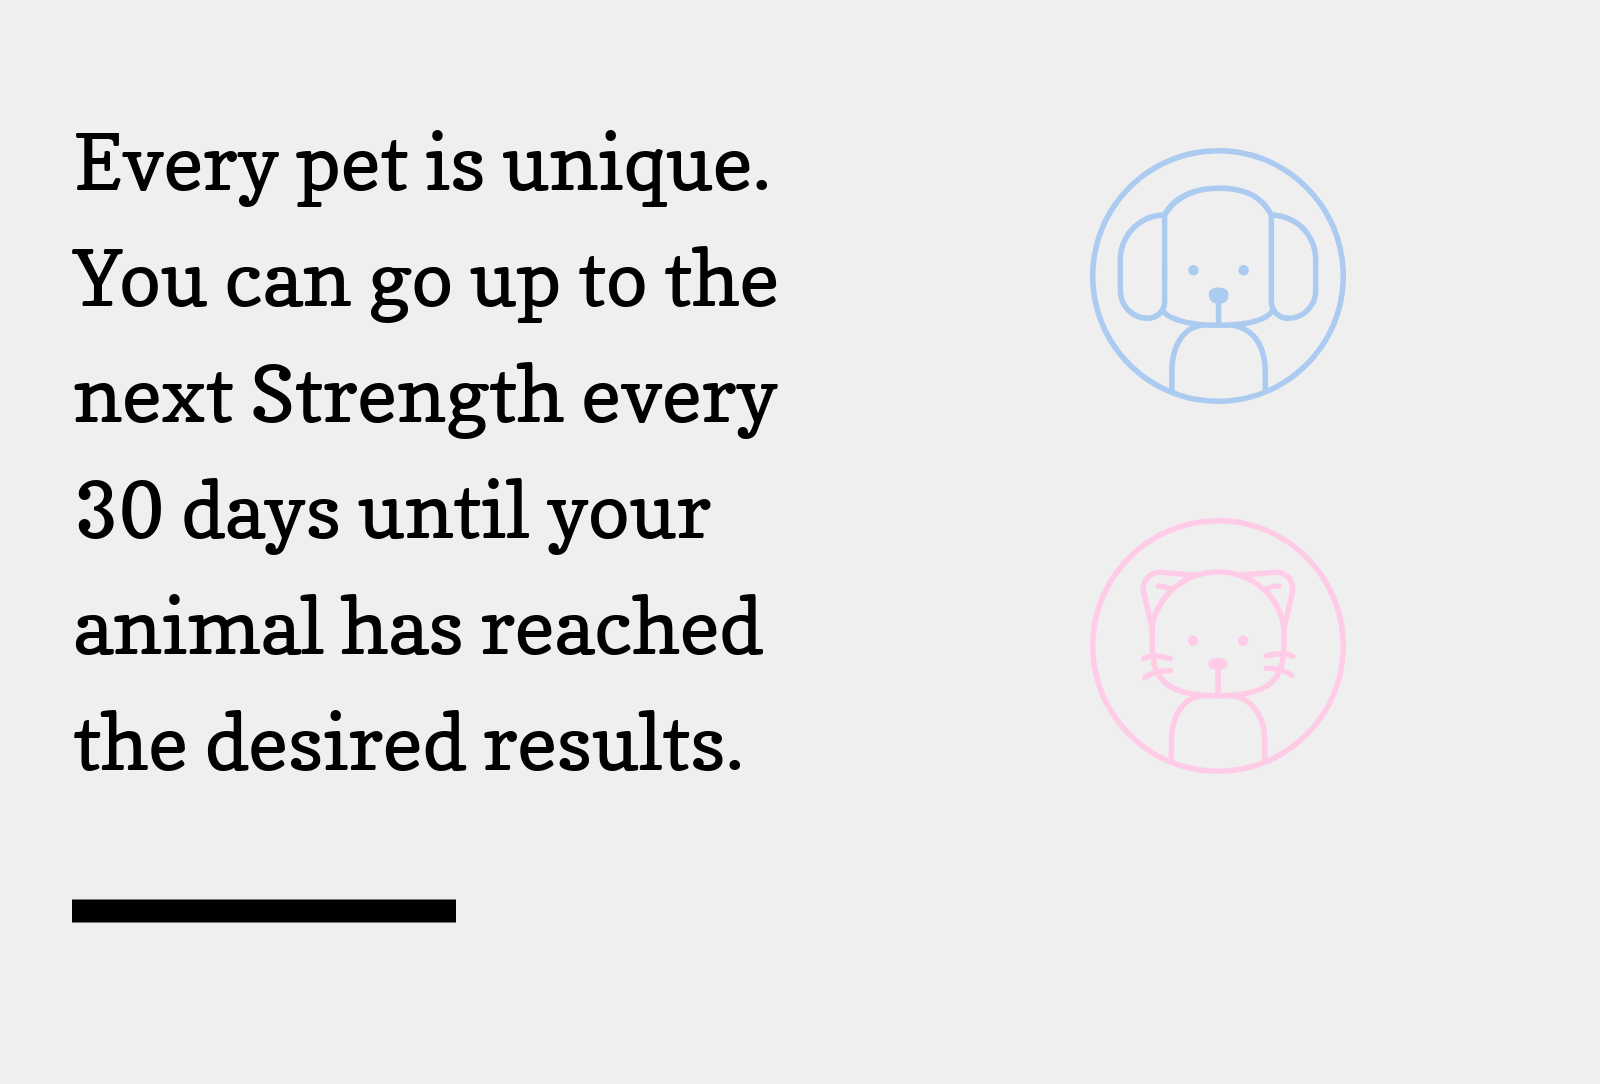 Every pet is unique. You can go up to the next Strength every 30 days until your animal has reached the desired results.